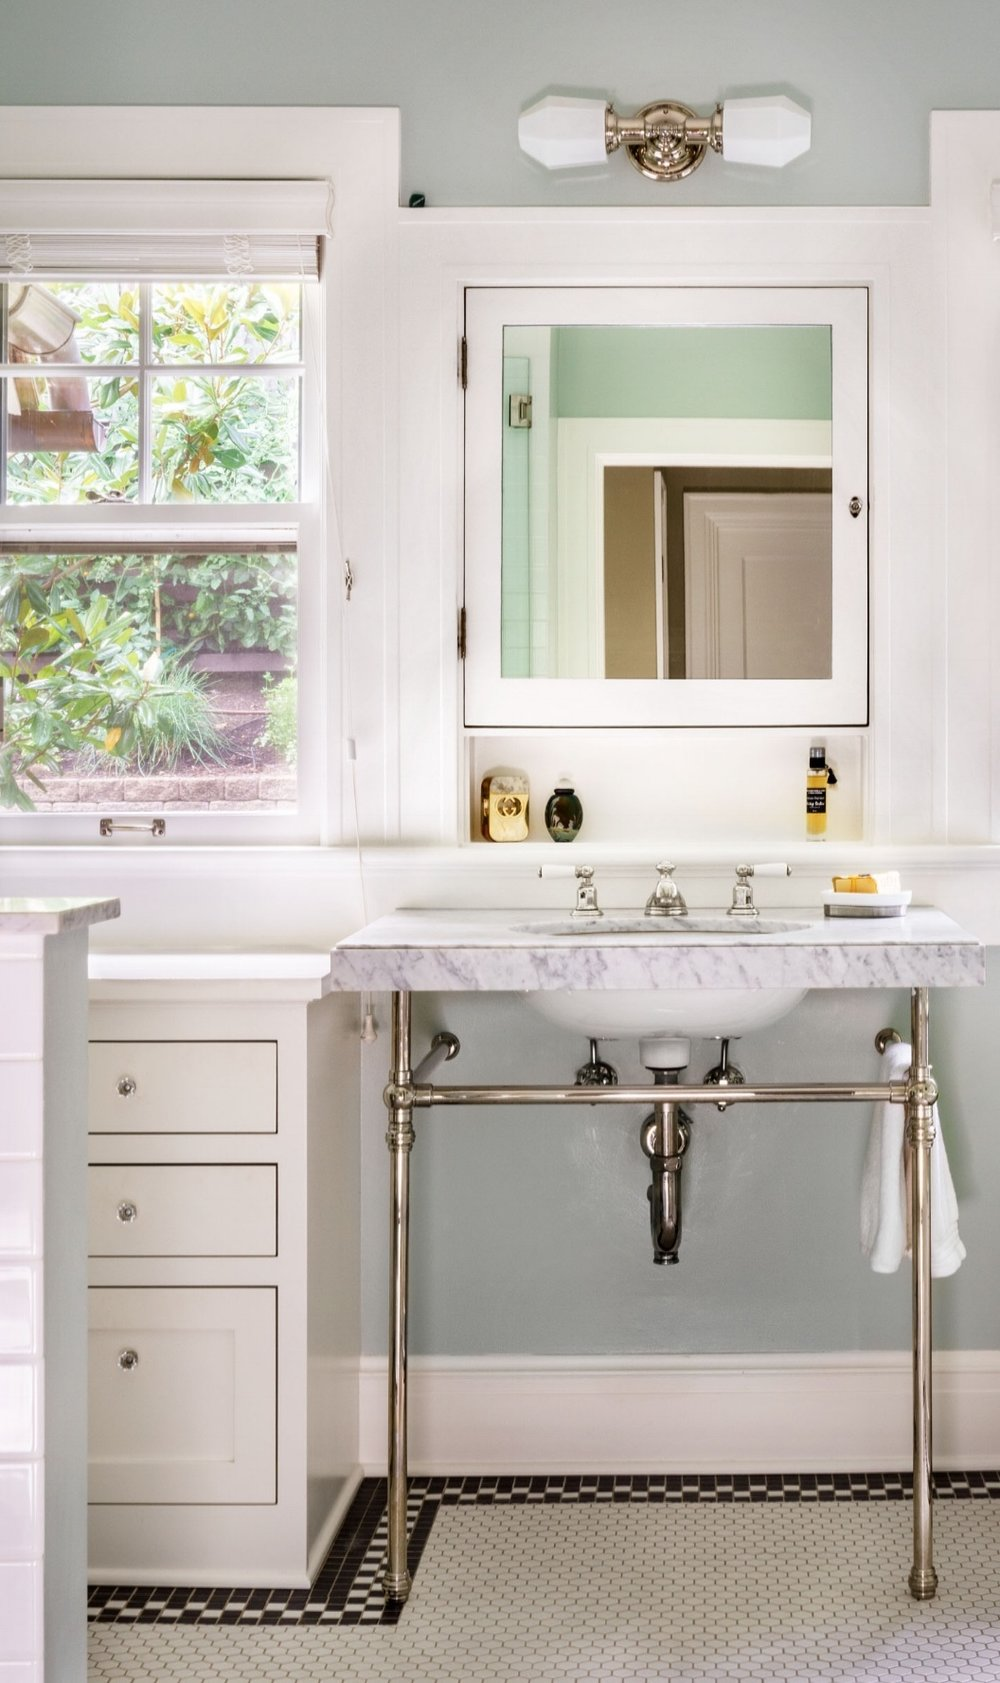 Custom sinks with more counter and pipe fittings.